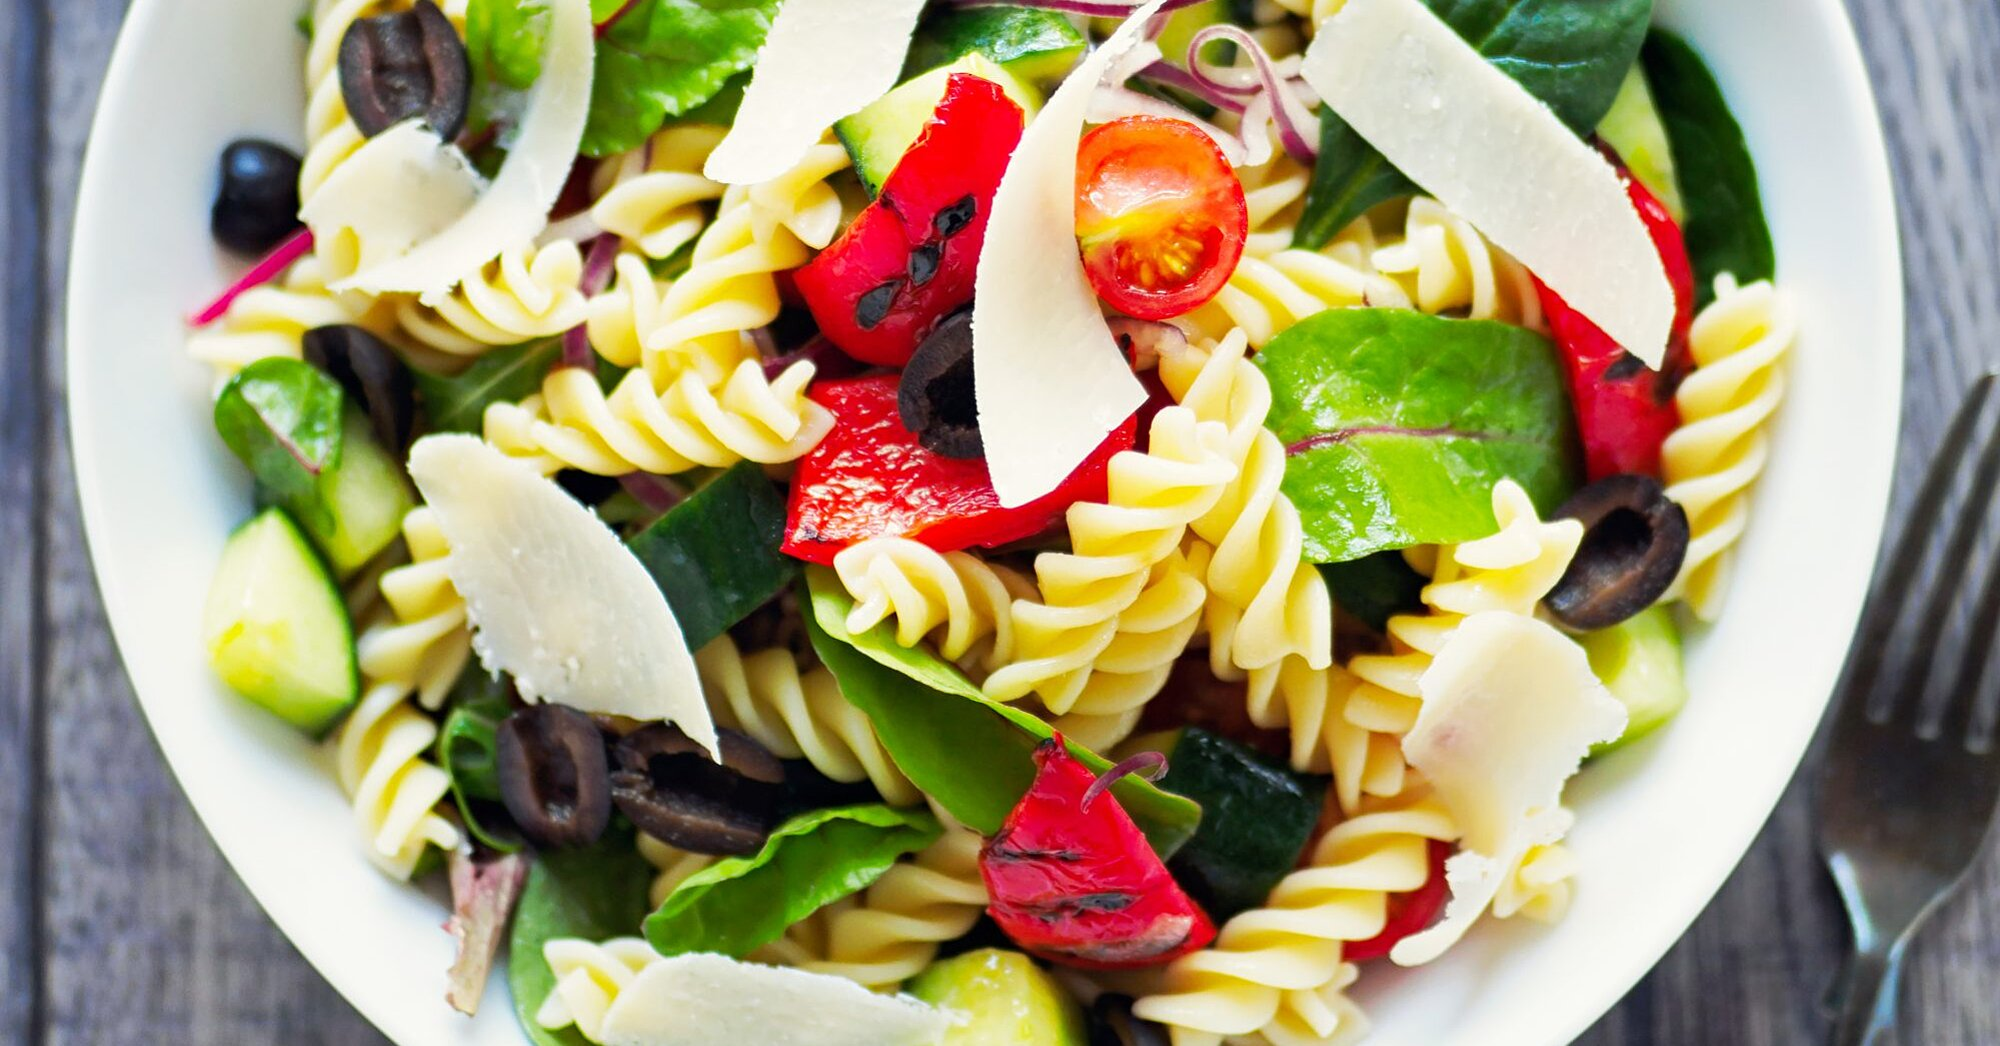 5 Pasta Salad Secrets That'll Give This Summer Staple a Major Upgrade